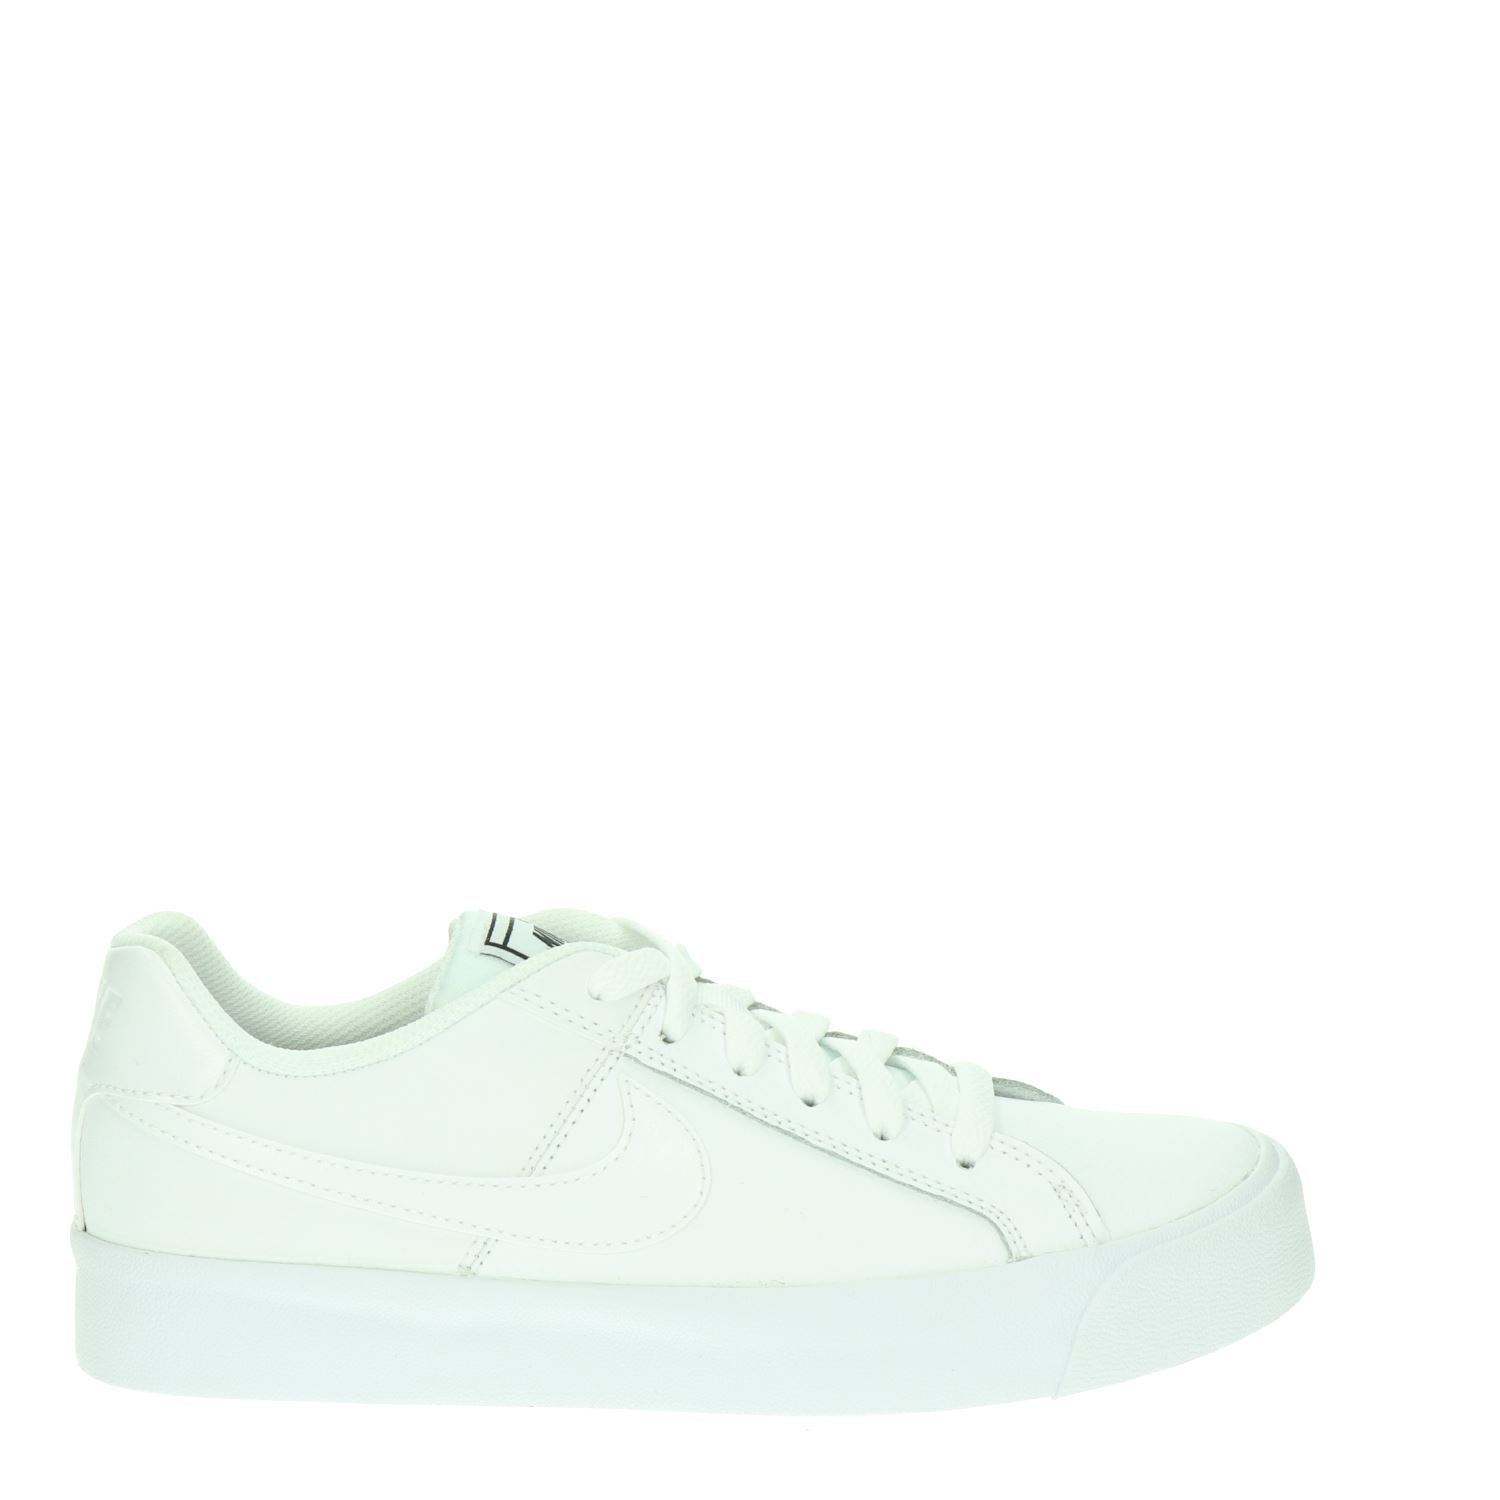 b2c93784d8e Nike Court Royale dames lage sneakers wit